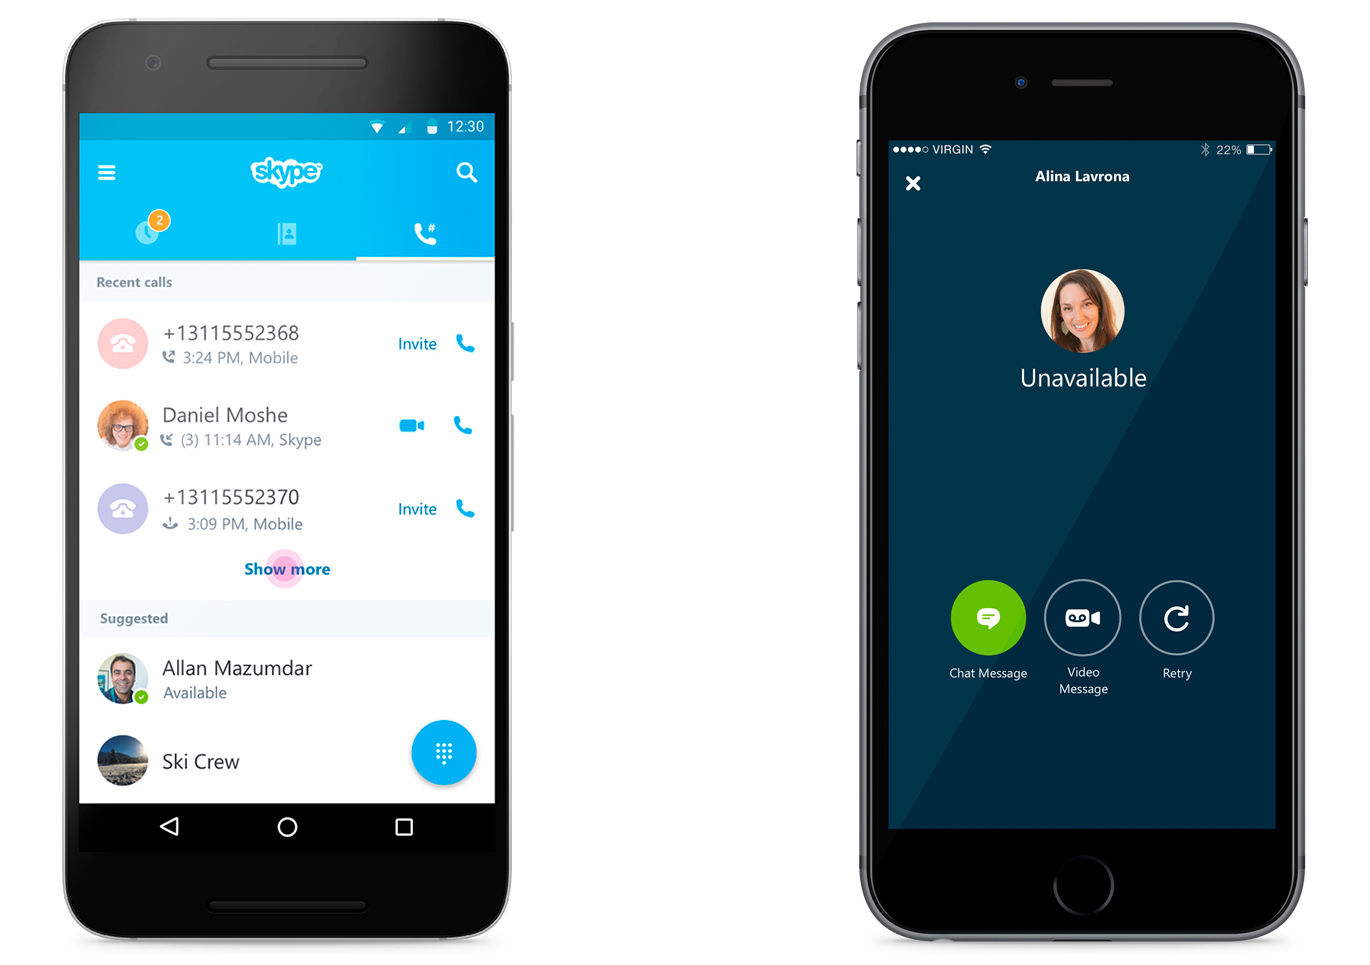 Skype announces improvements to calls and voicemail skype is one of the most common ways to make video and voip calls but there are a number of annoyances that seem to be carried over from traditional phone m4hsunfo